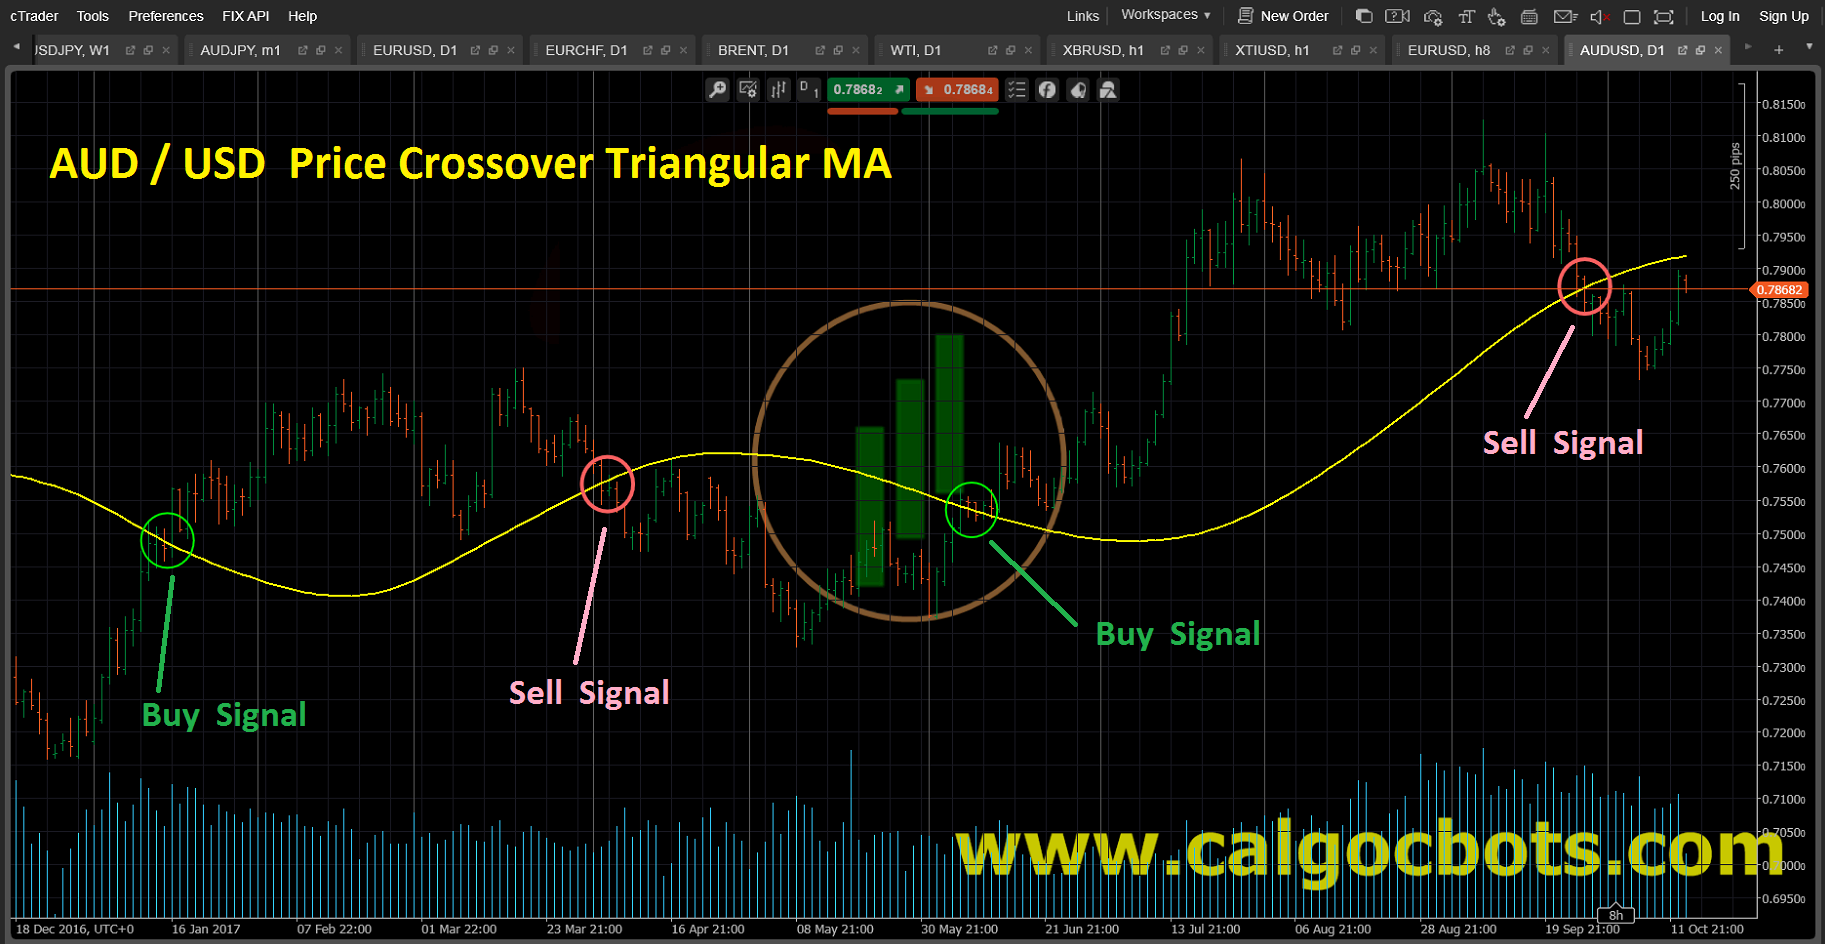 Price Crossover Triangular MA Bar_Chart_AUD_USD_cAlgo_cBots_cTrader_01